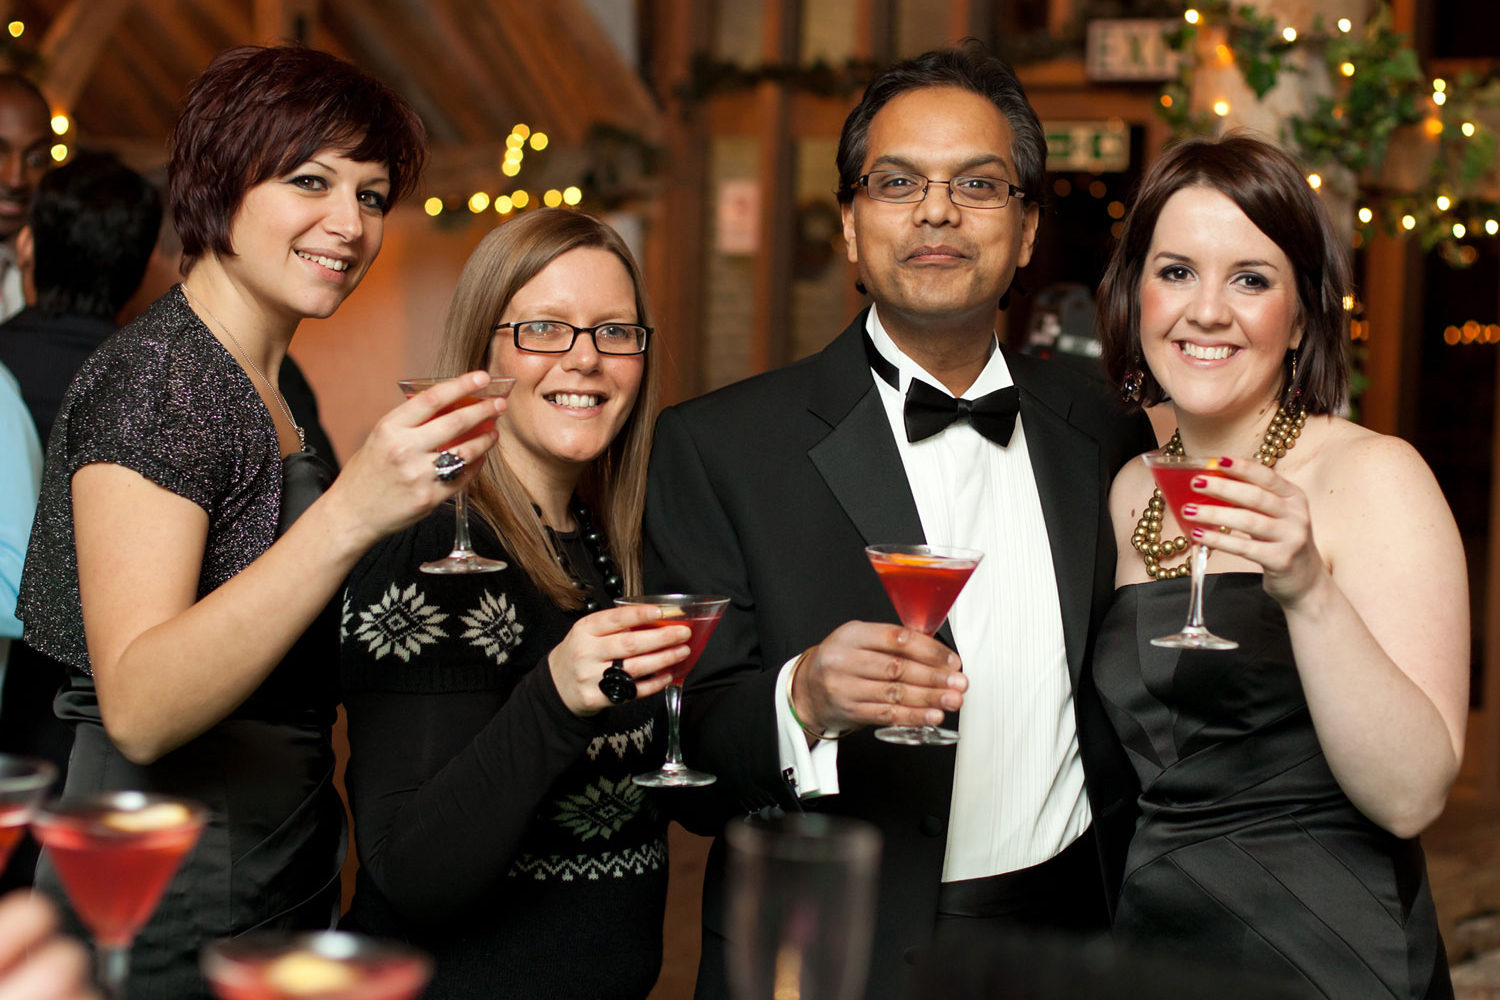 Commercial Event Photography - Adam Hillier Photography